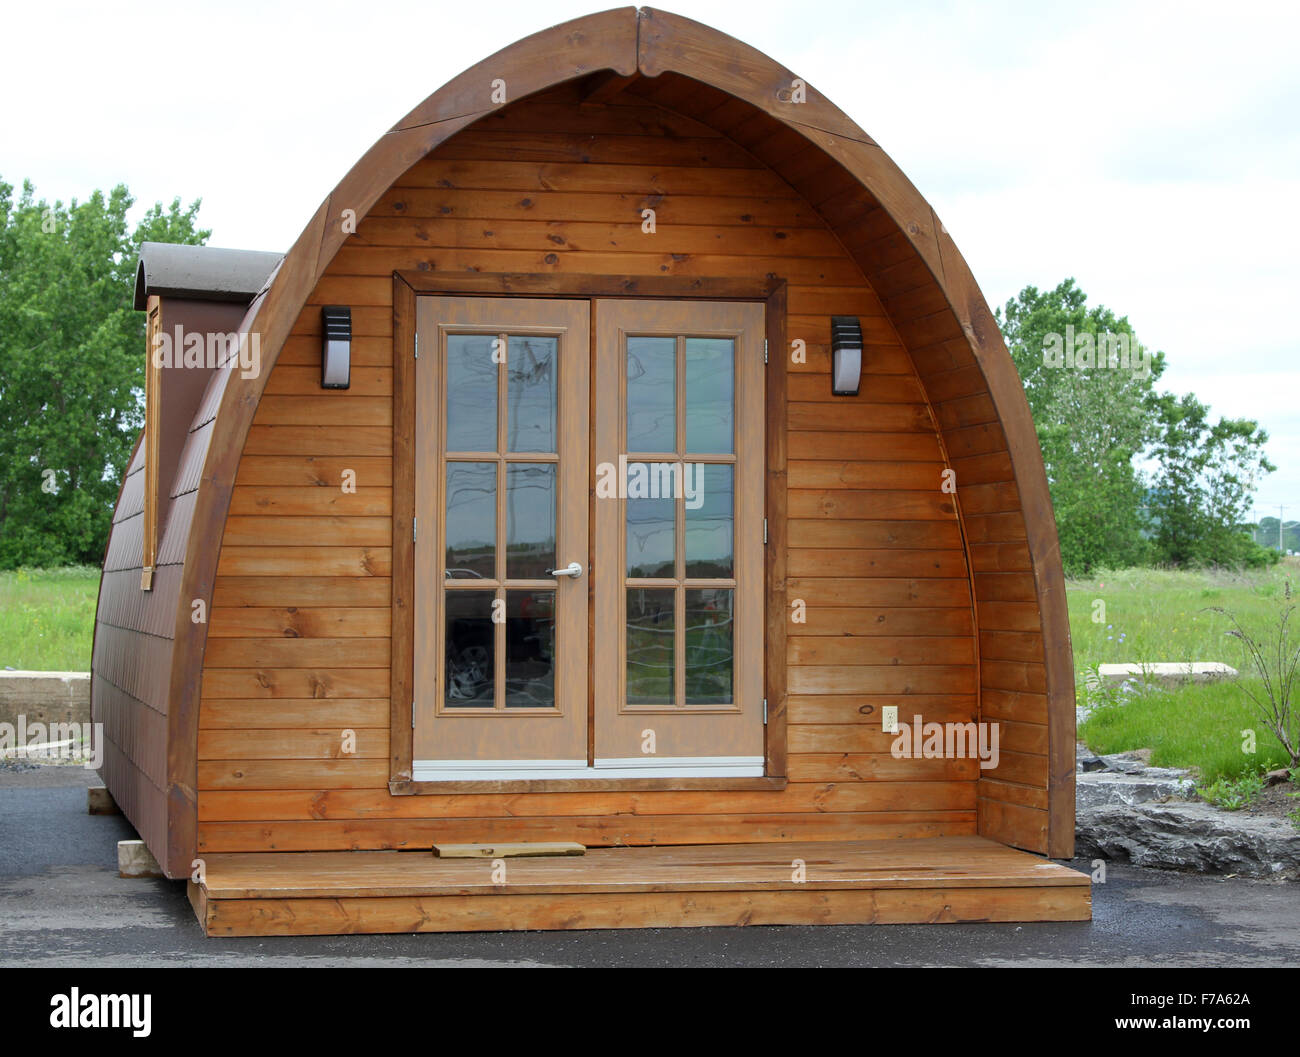 Tiny arched cabin with glass french doors - Stock Image